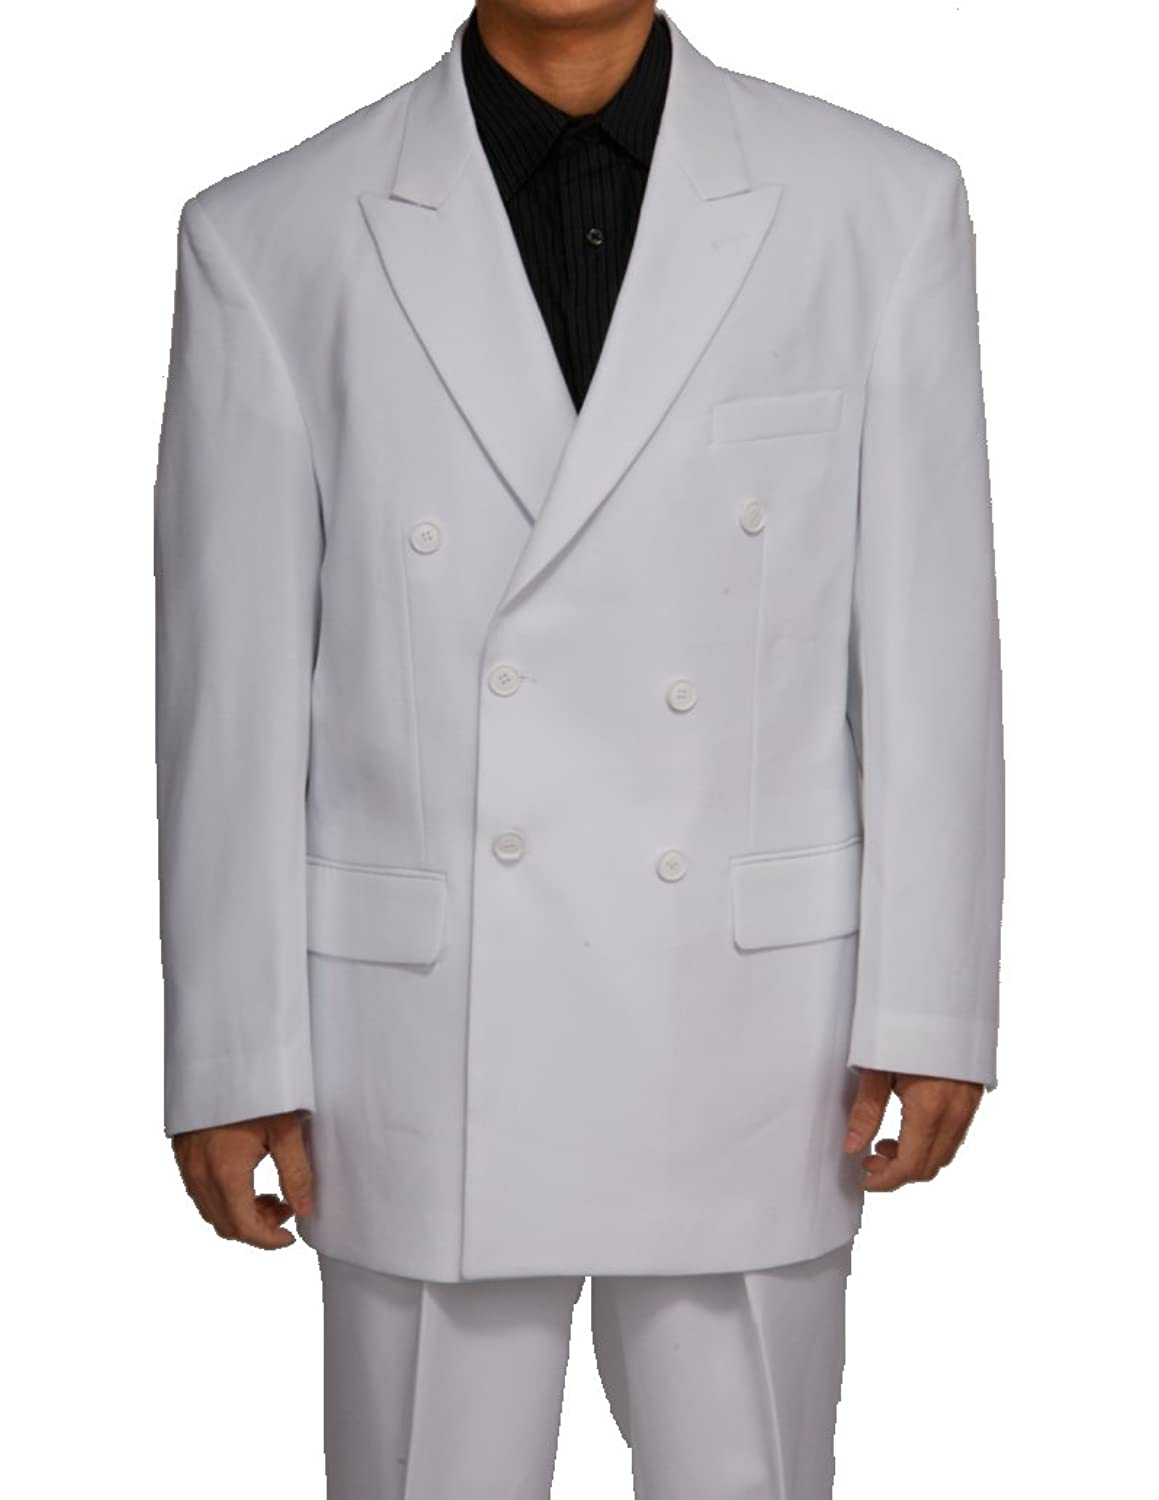 New 1940's Style Zoot Suits for Sale New Double Breasted (DB) White Mens Business Dress Suit  AT vintagedancer.com